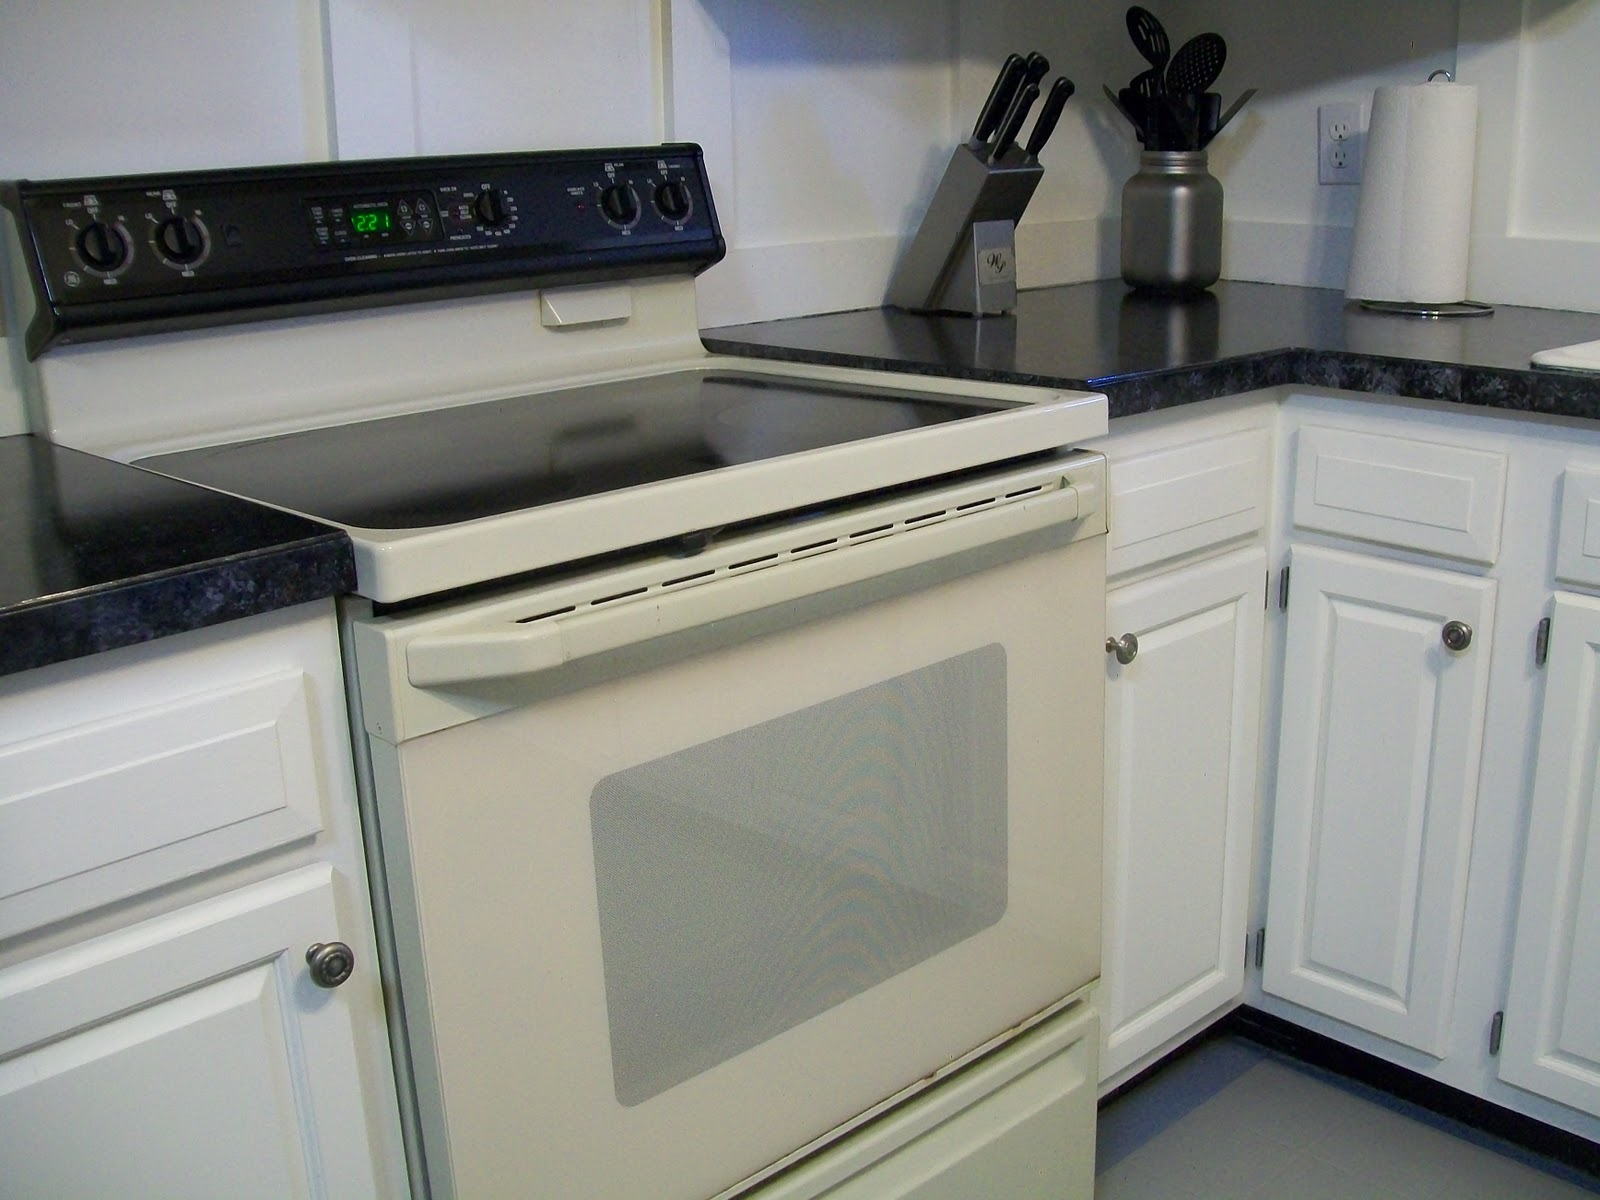 cabinets excellentpray design images home spray cabinet paint nj painting ideas white kitchen excellent central